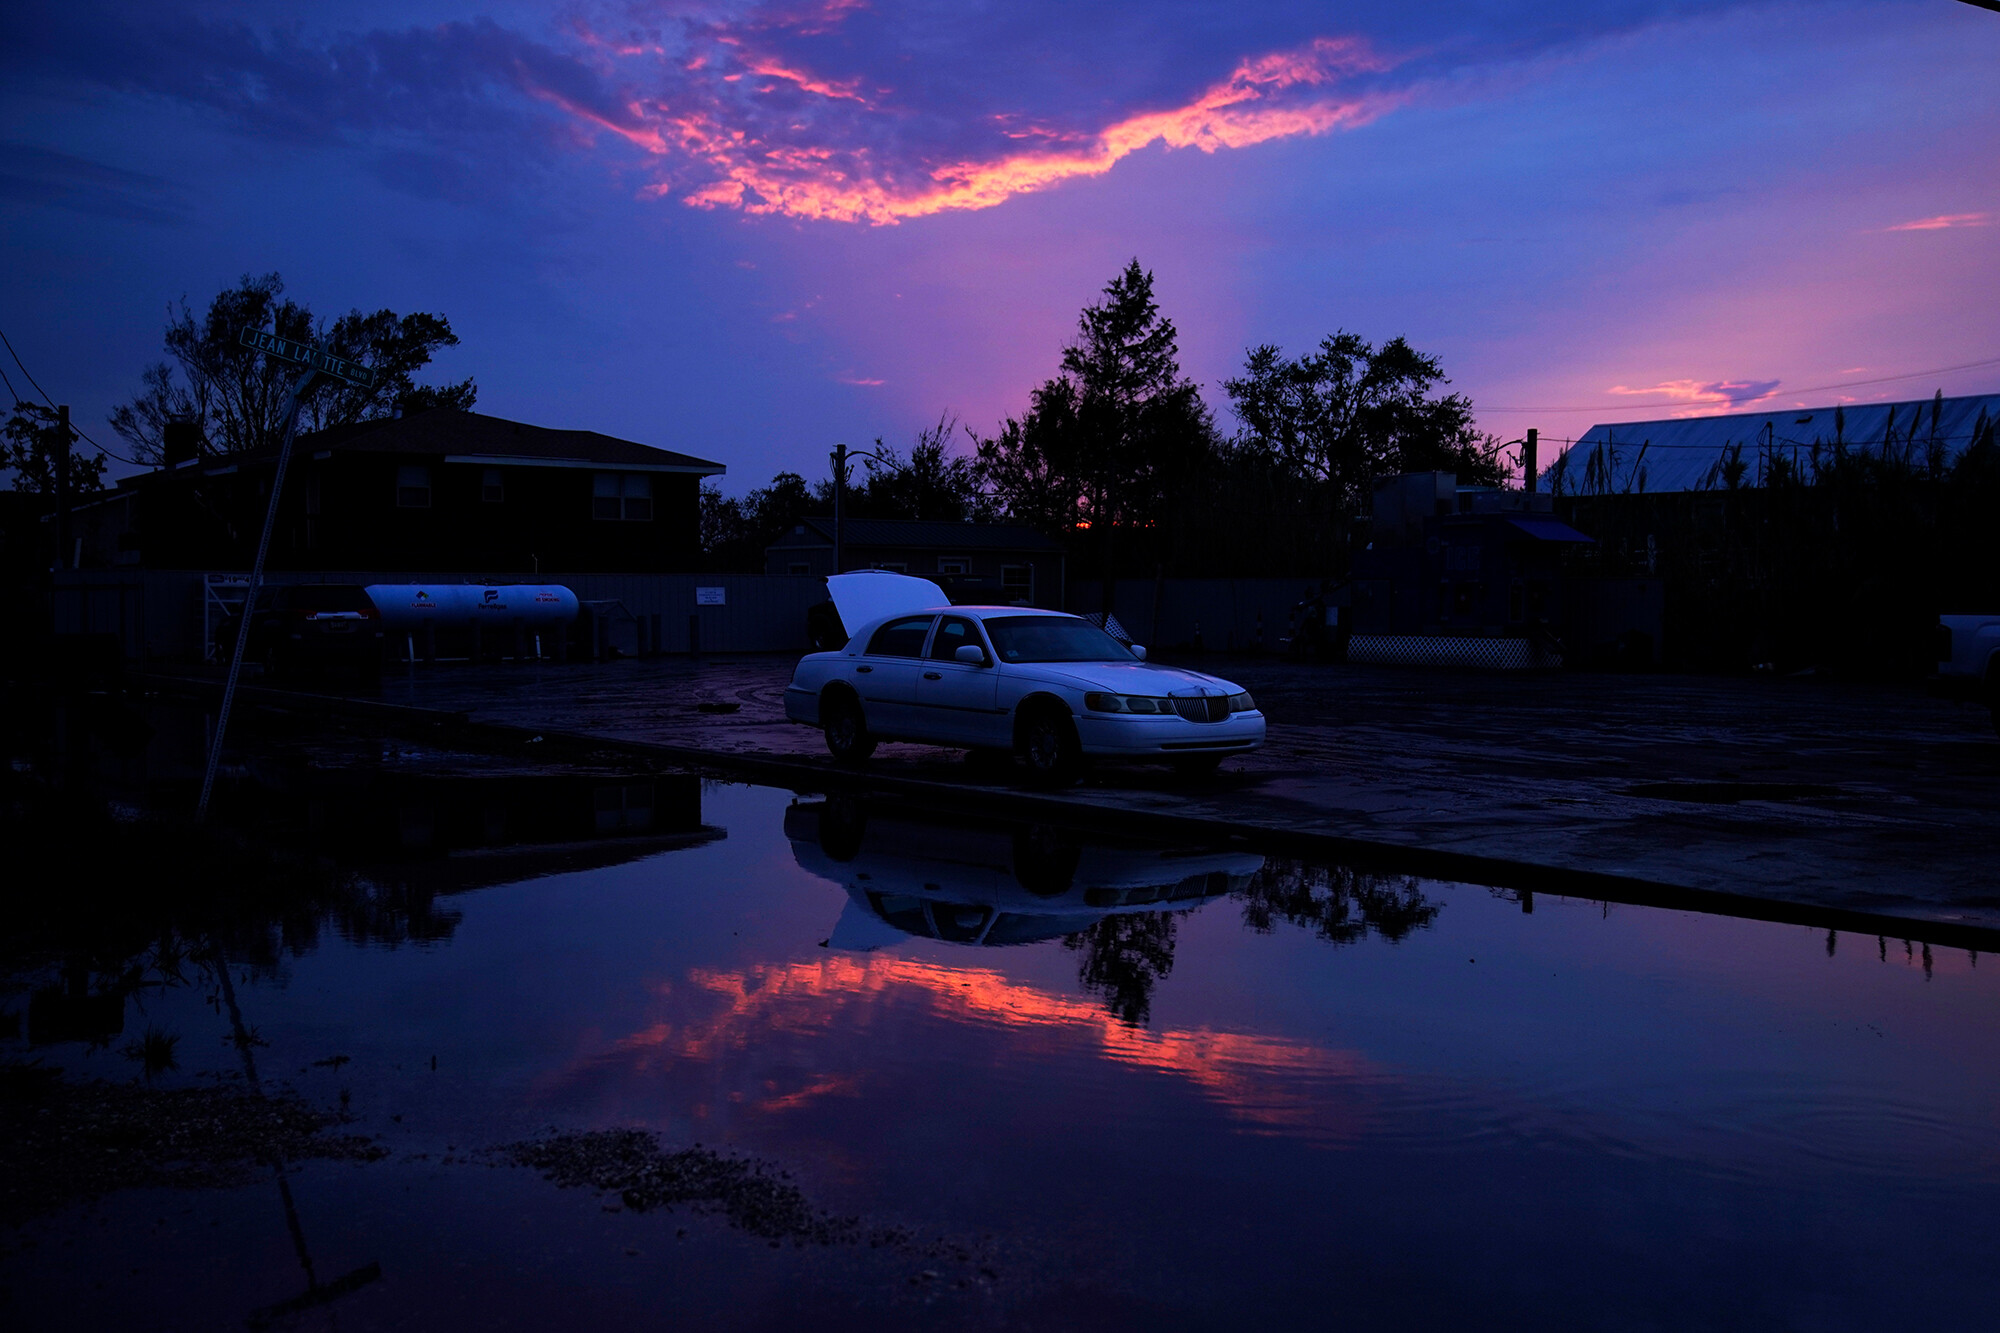 <i>John Locher/AP</i><br/>Car prices are about to soar again. Blame Hurricane Ida. A damaged car sits beside floodwaters in the aftermath of Hurricane Ida in Jean Lafitte